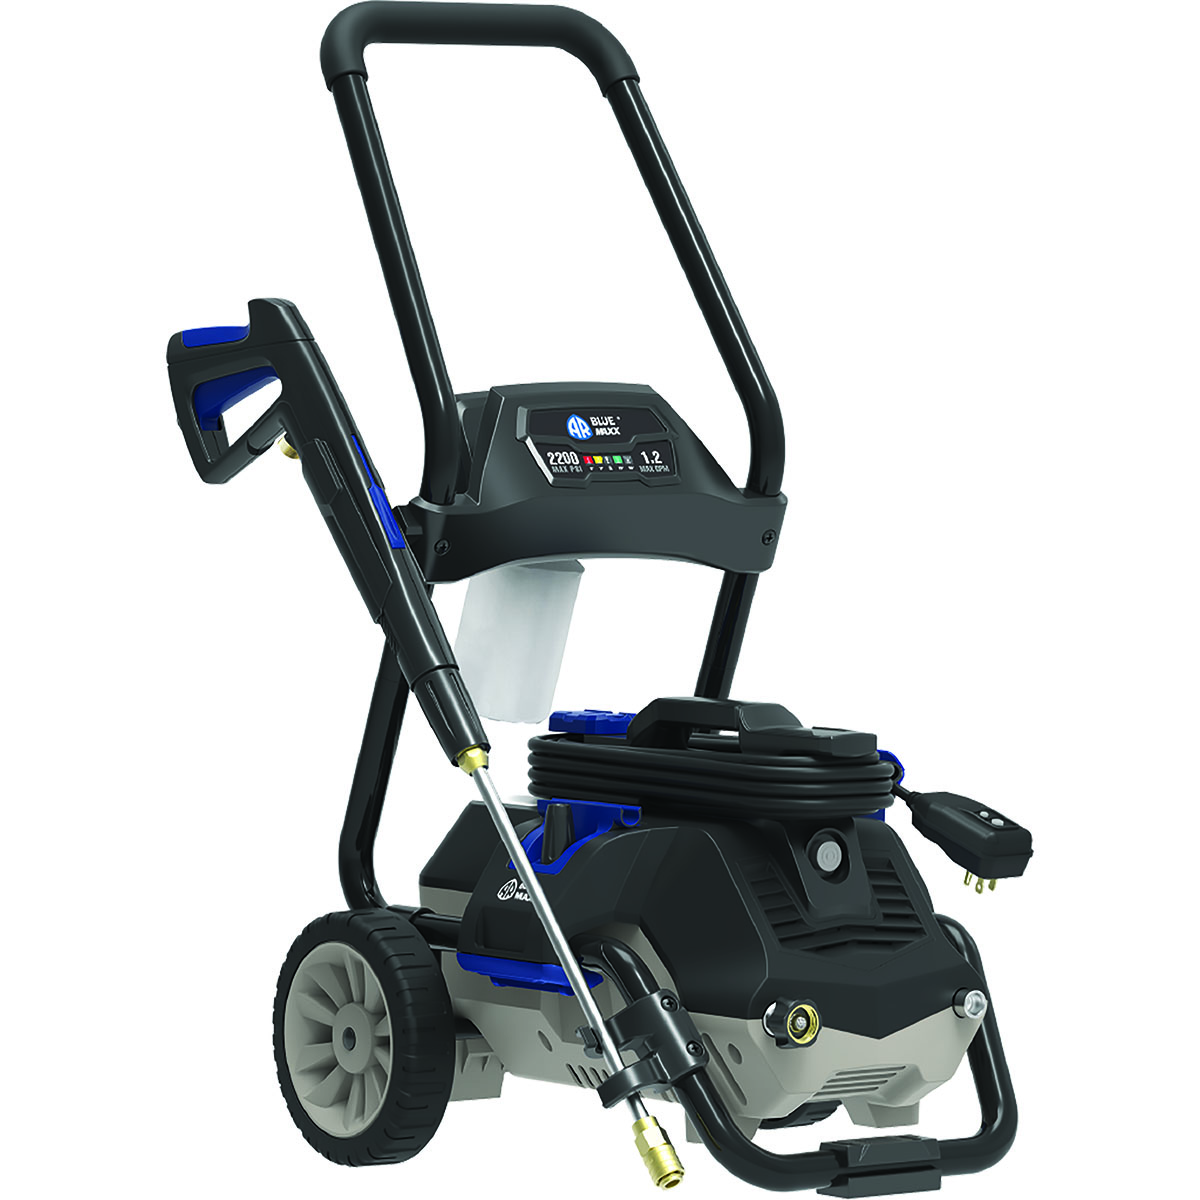 AR Blue Clean MAXX2200 electric pressure washer